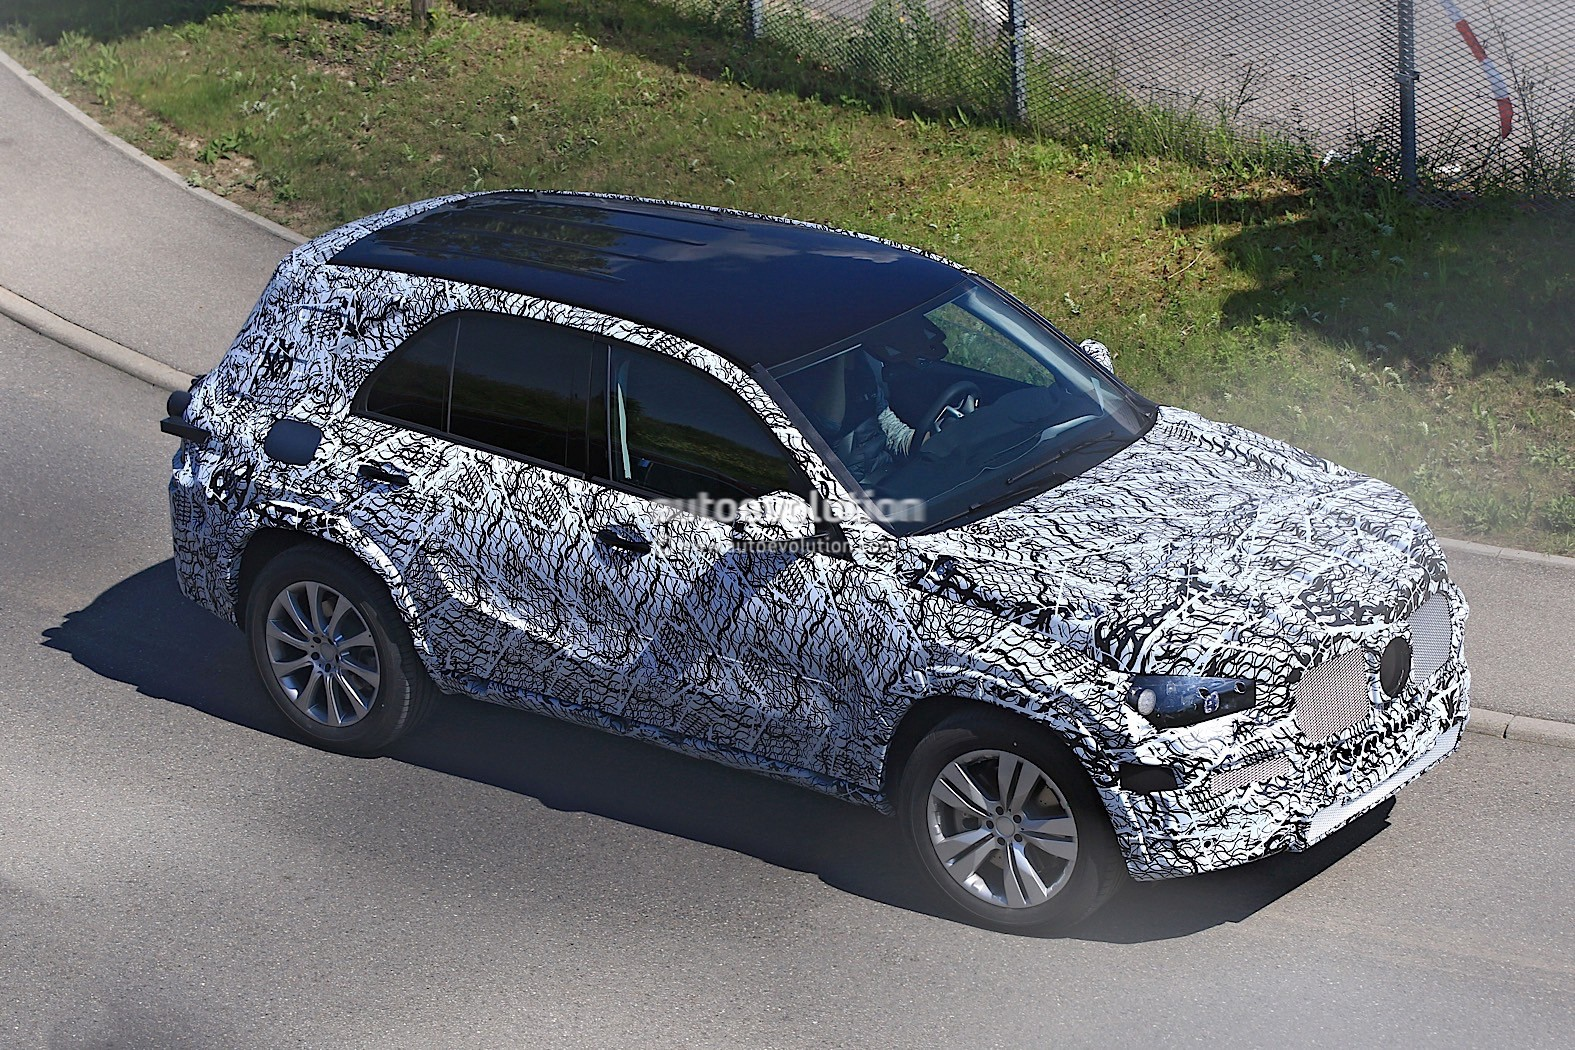 2018-mercedes-benz-glb-starts-testing-with-production-body_5-autonovosti.me-2